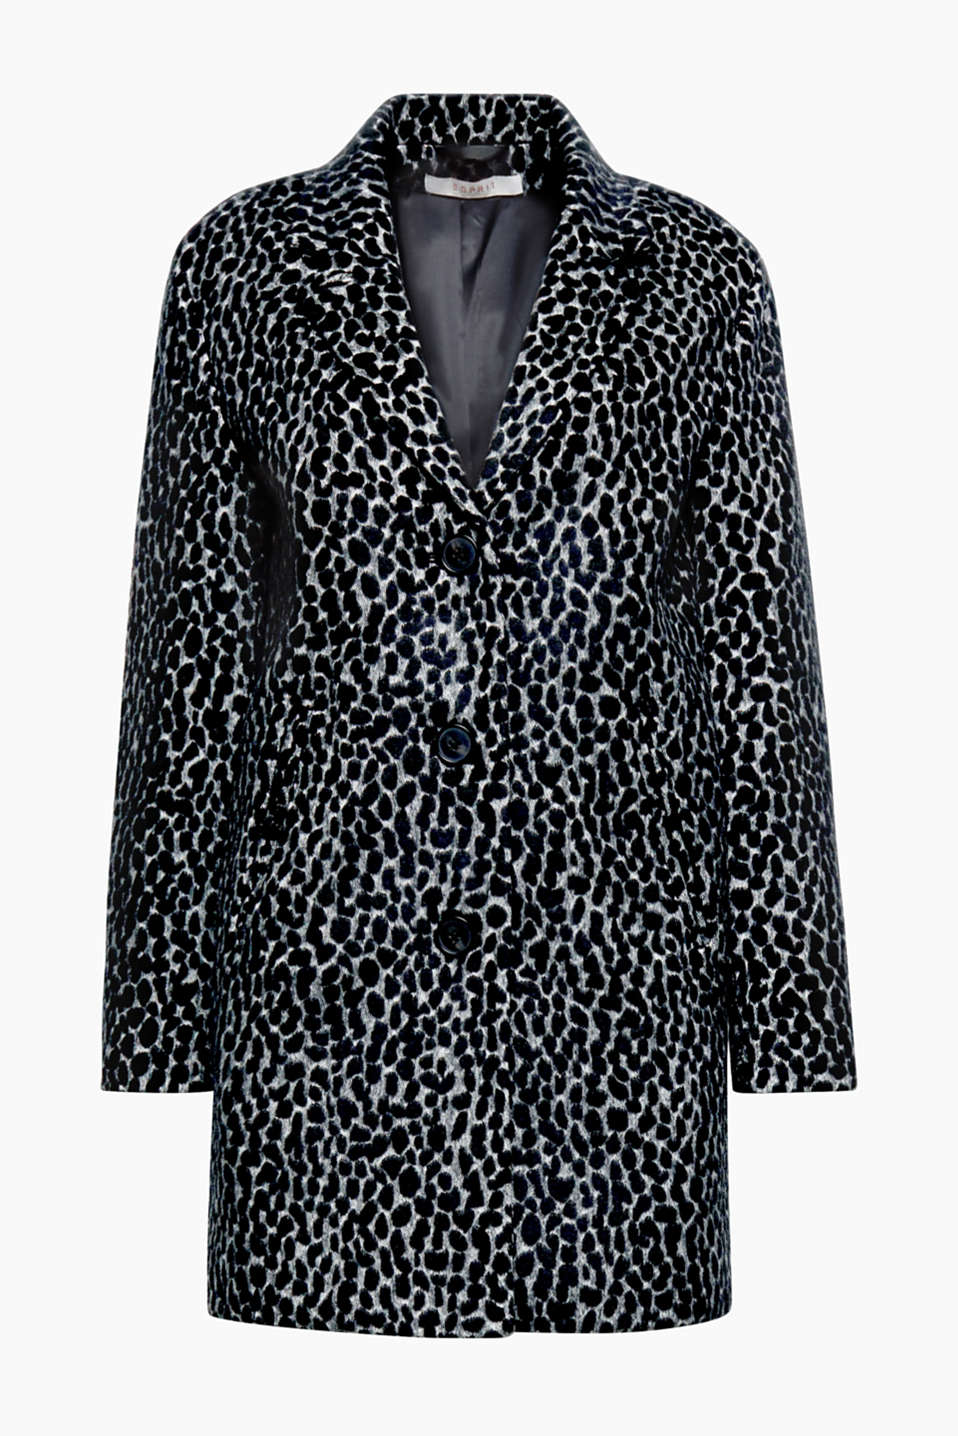 This stylish soft leopardskin coat will make sure you stay warmly wrapped up and on trend throughout the autumn!